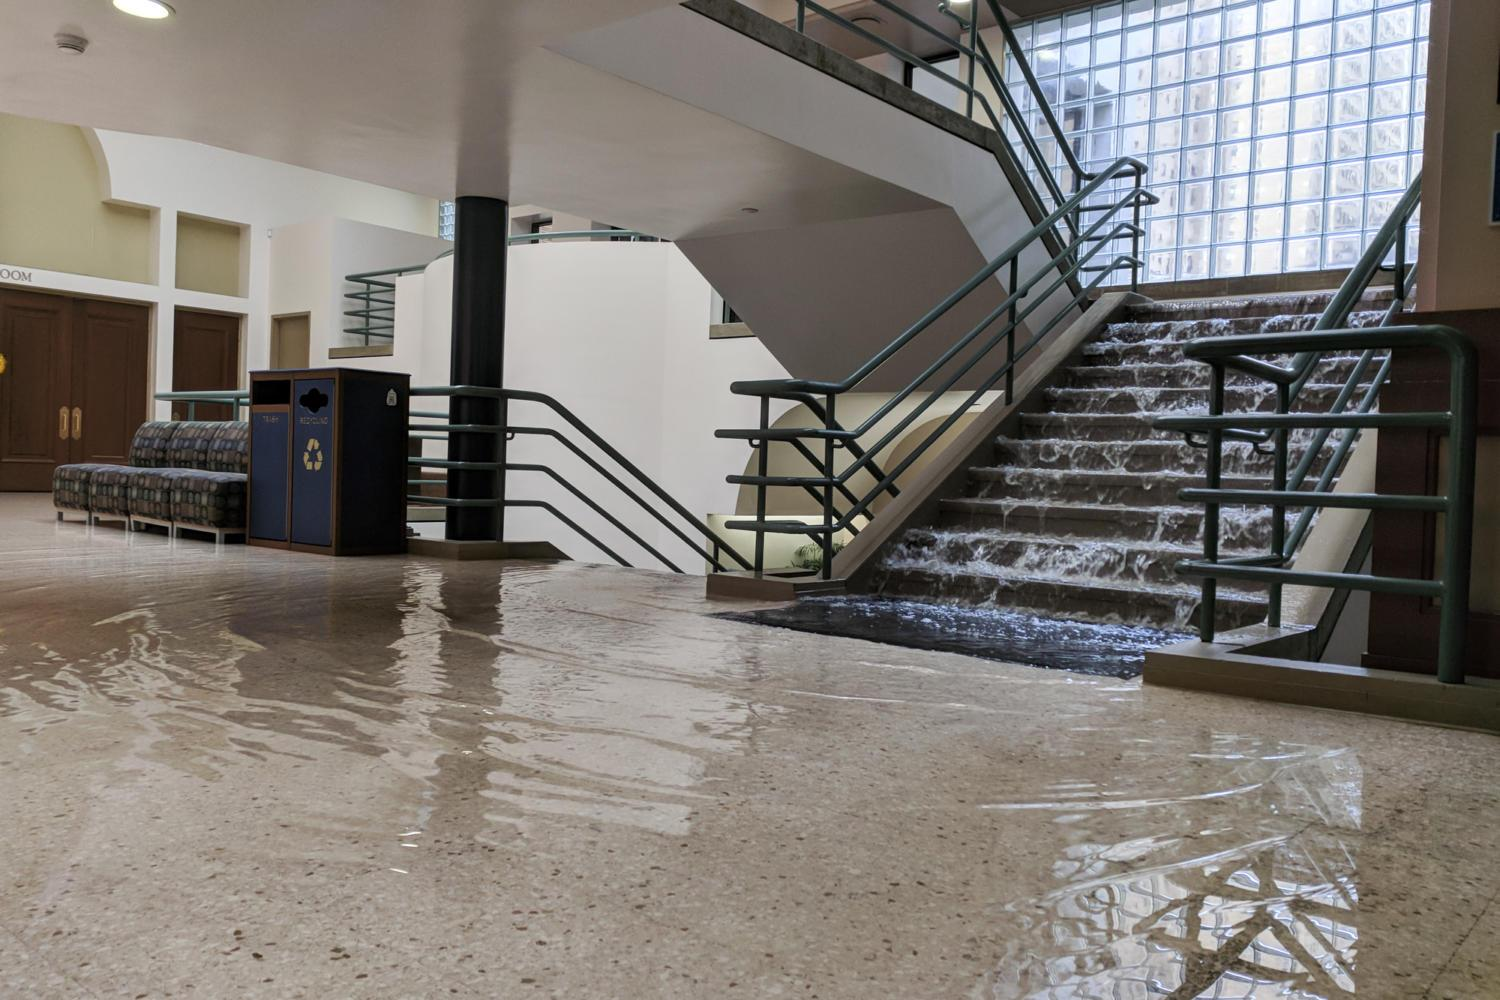 Water floods down the stairs in the William Pitt Union Sunday morning. (Photo by John Hamilton / Managing Editor)